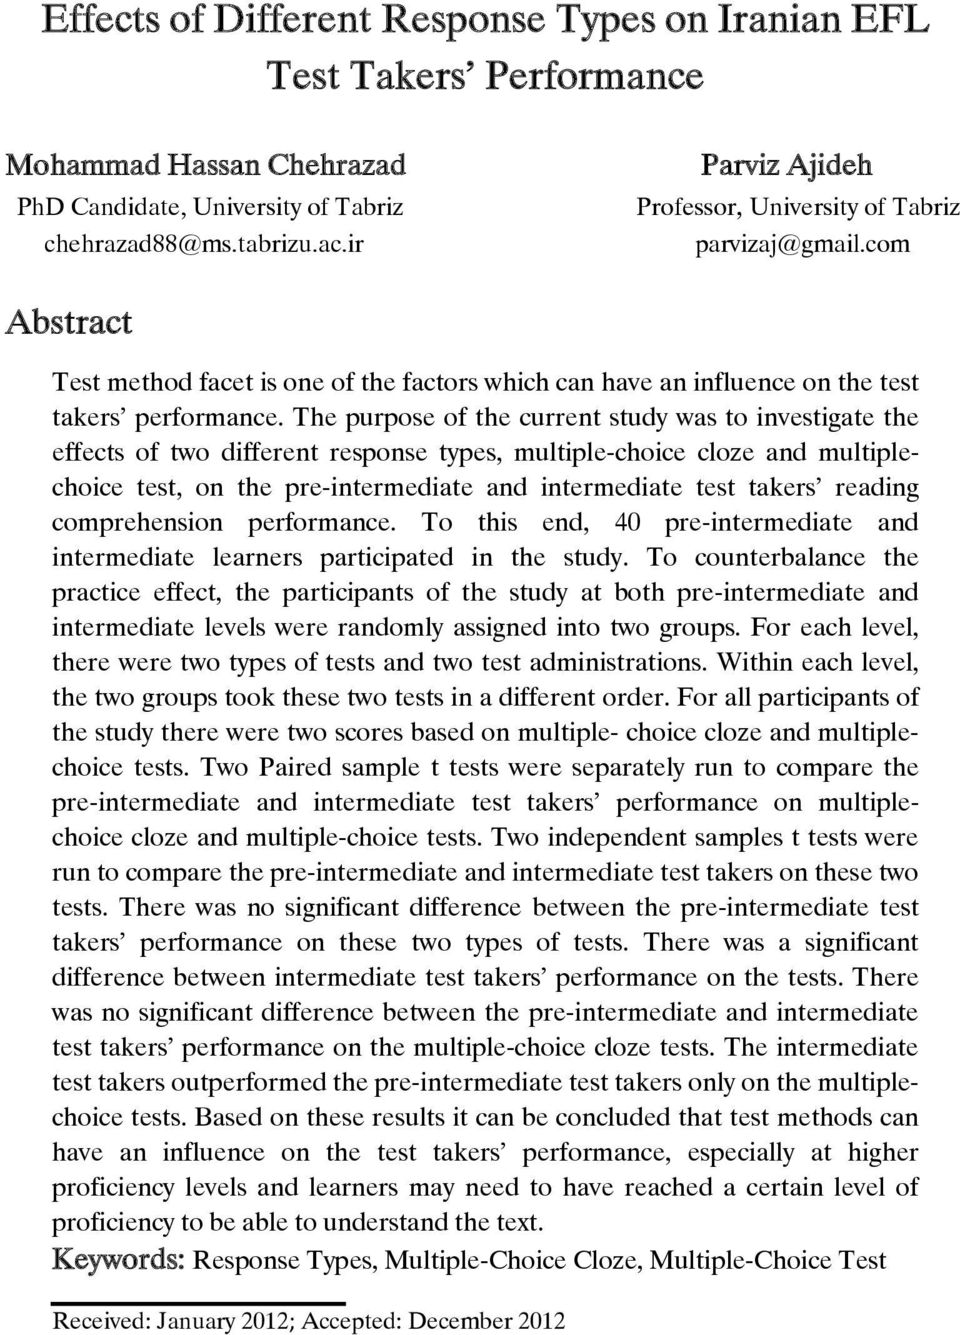 The purpose of the current study was to investigate the effects of two different response types, multiple-choice cloze and multiplechoice test, on the pre-intermediate and intermediate test takers